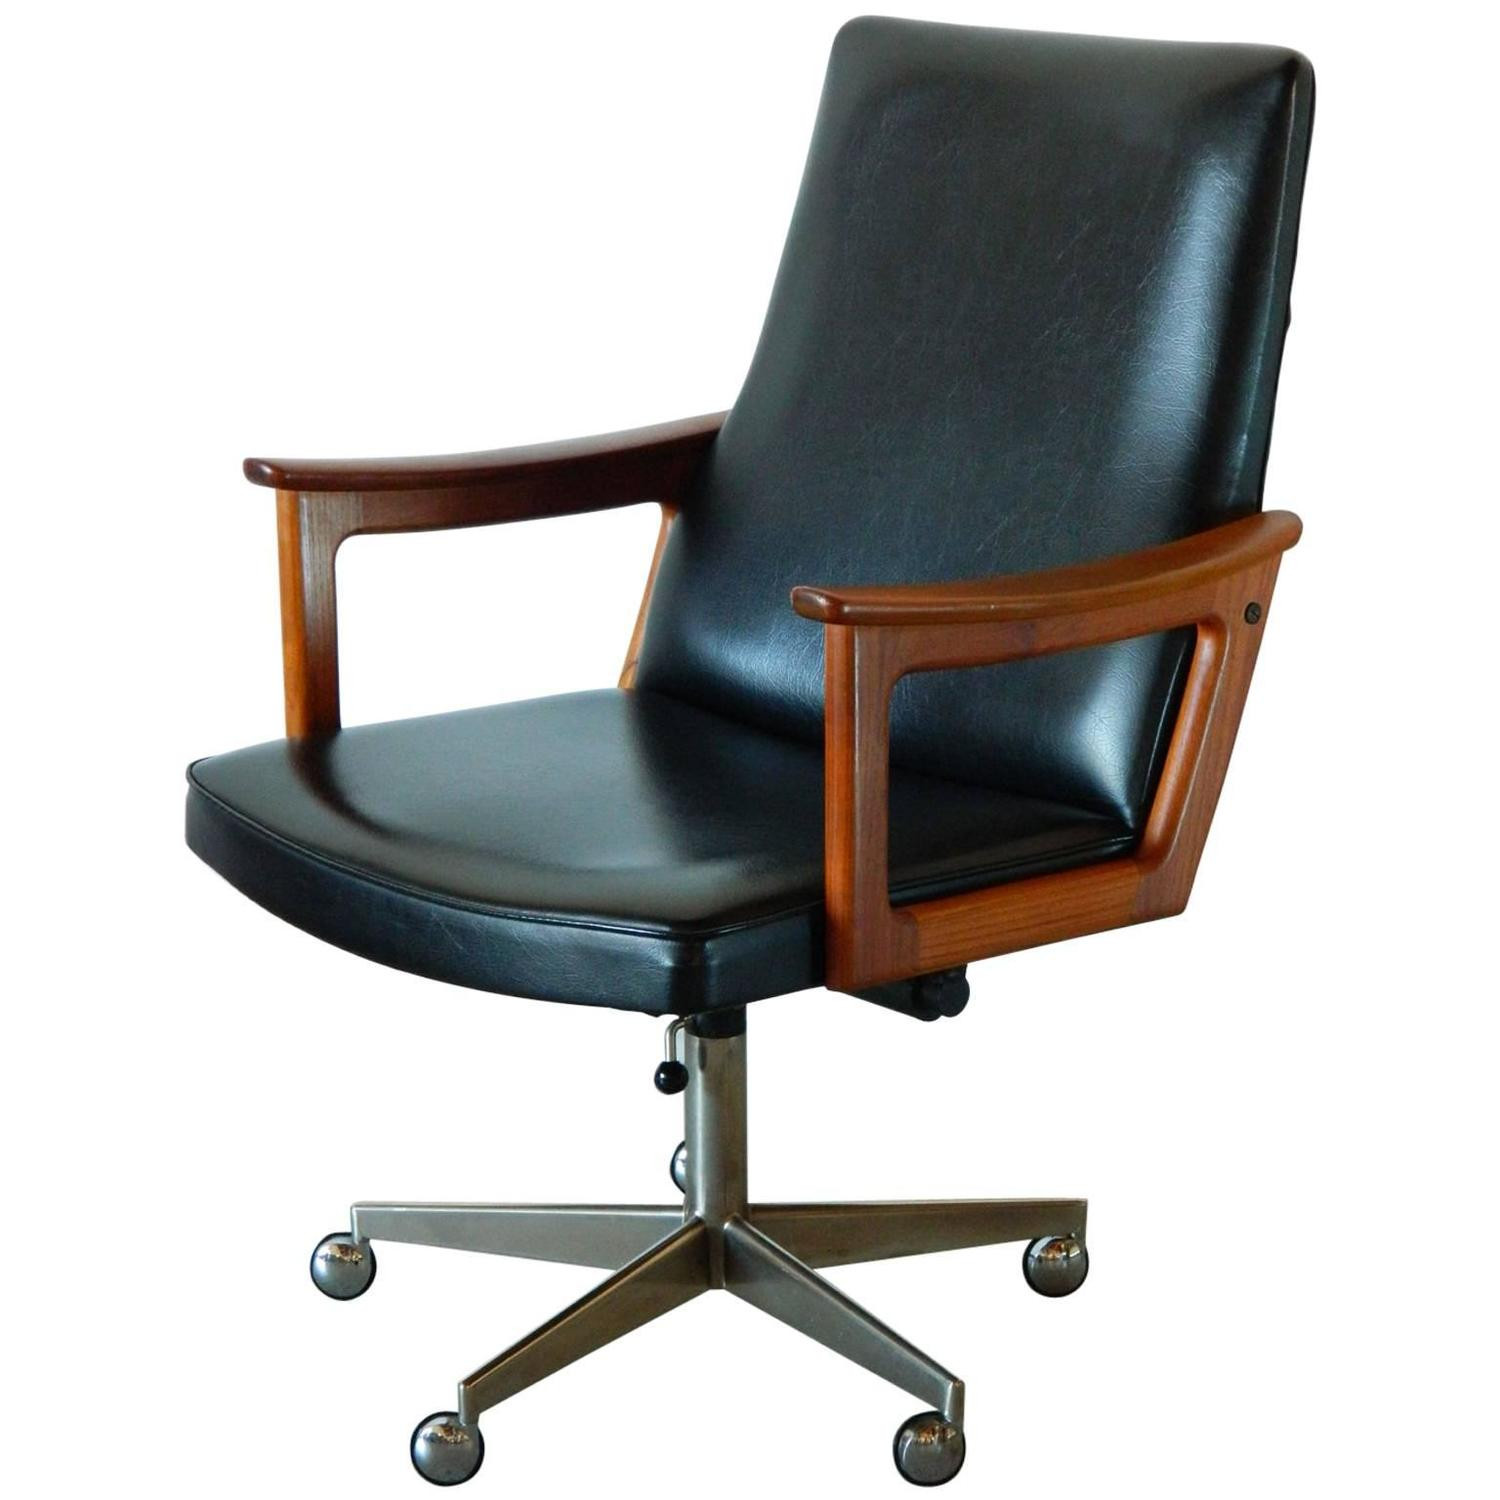 Best ideas about Mid Century Office Chair . Save or Pin Mid Century Modern Danish Teak Desk Chair in the style of Now.